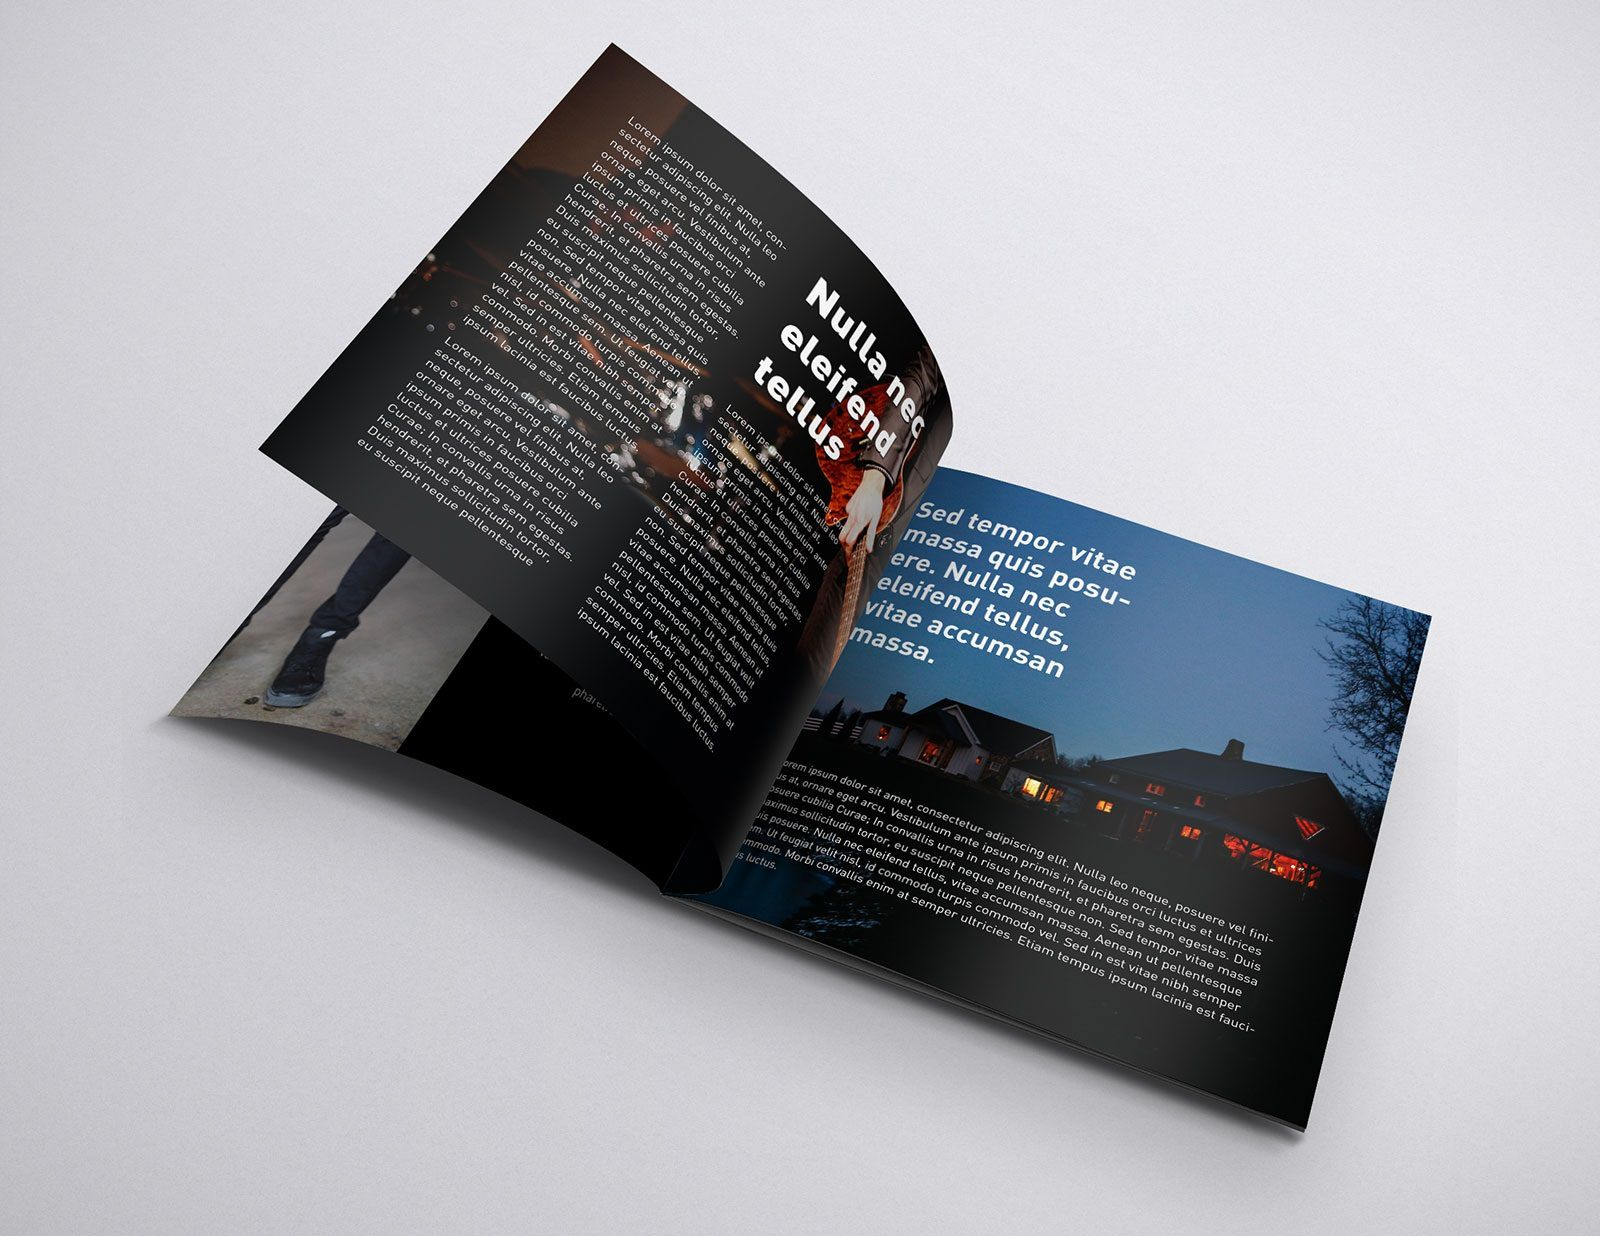 004 Stunning Square Brochure Template Psd Free Download Design Full